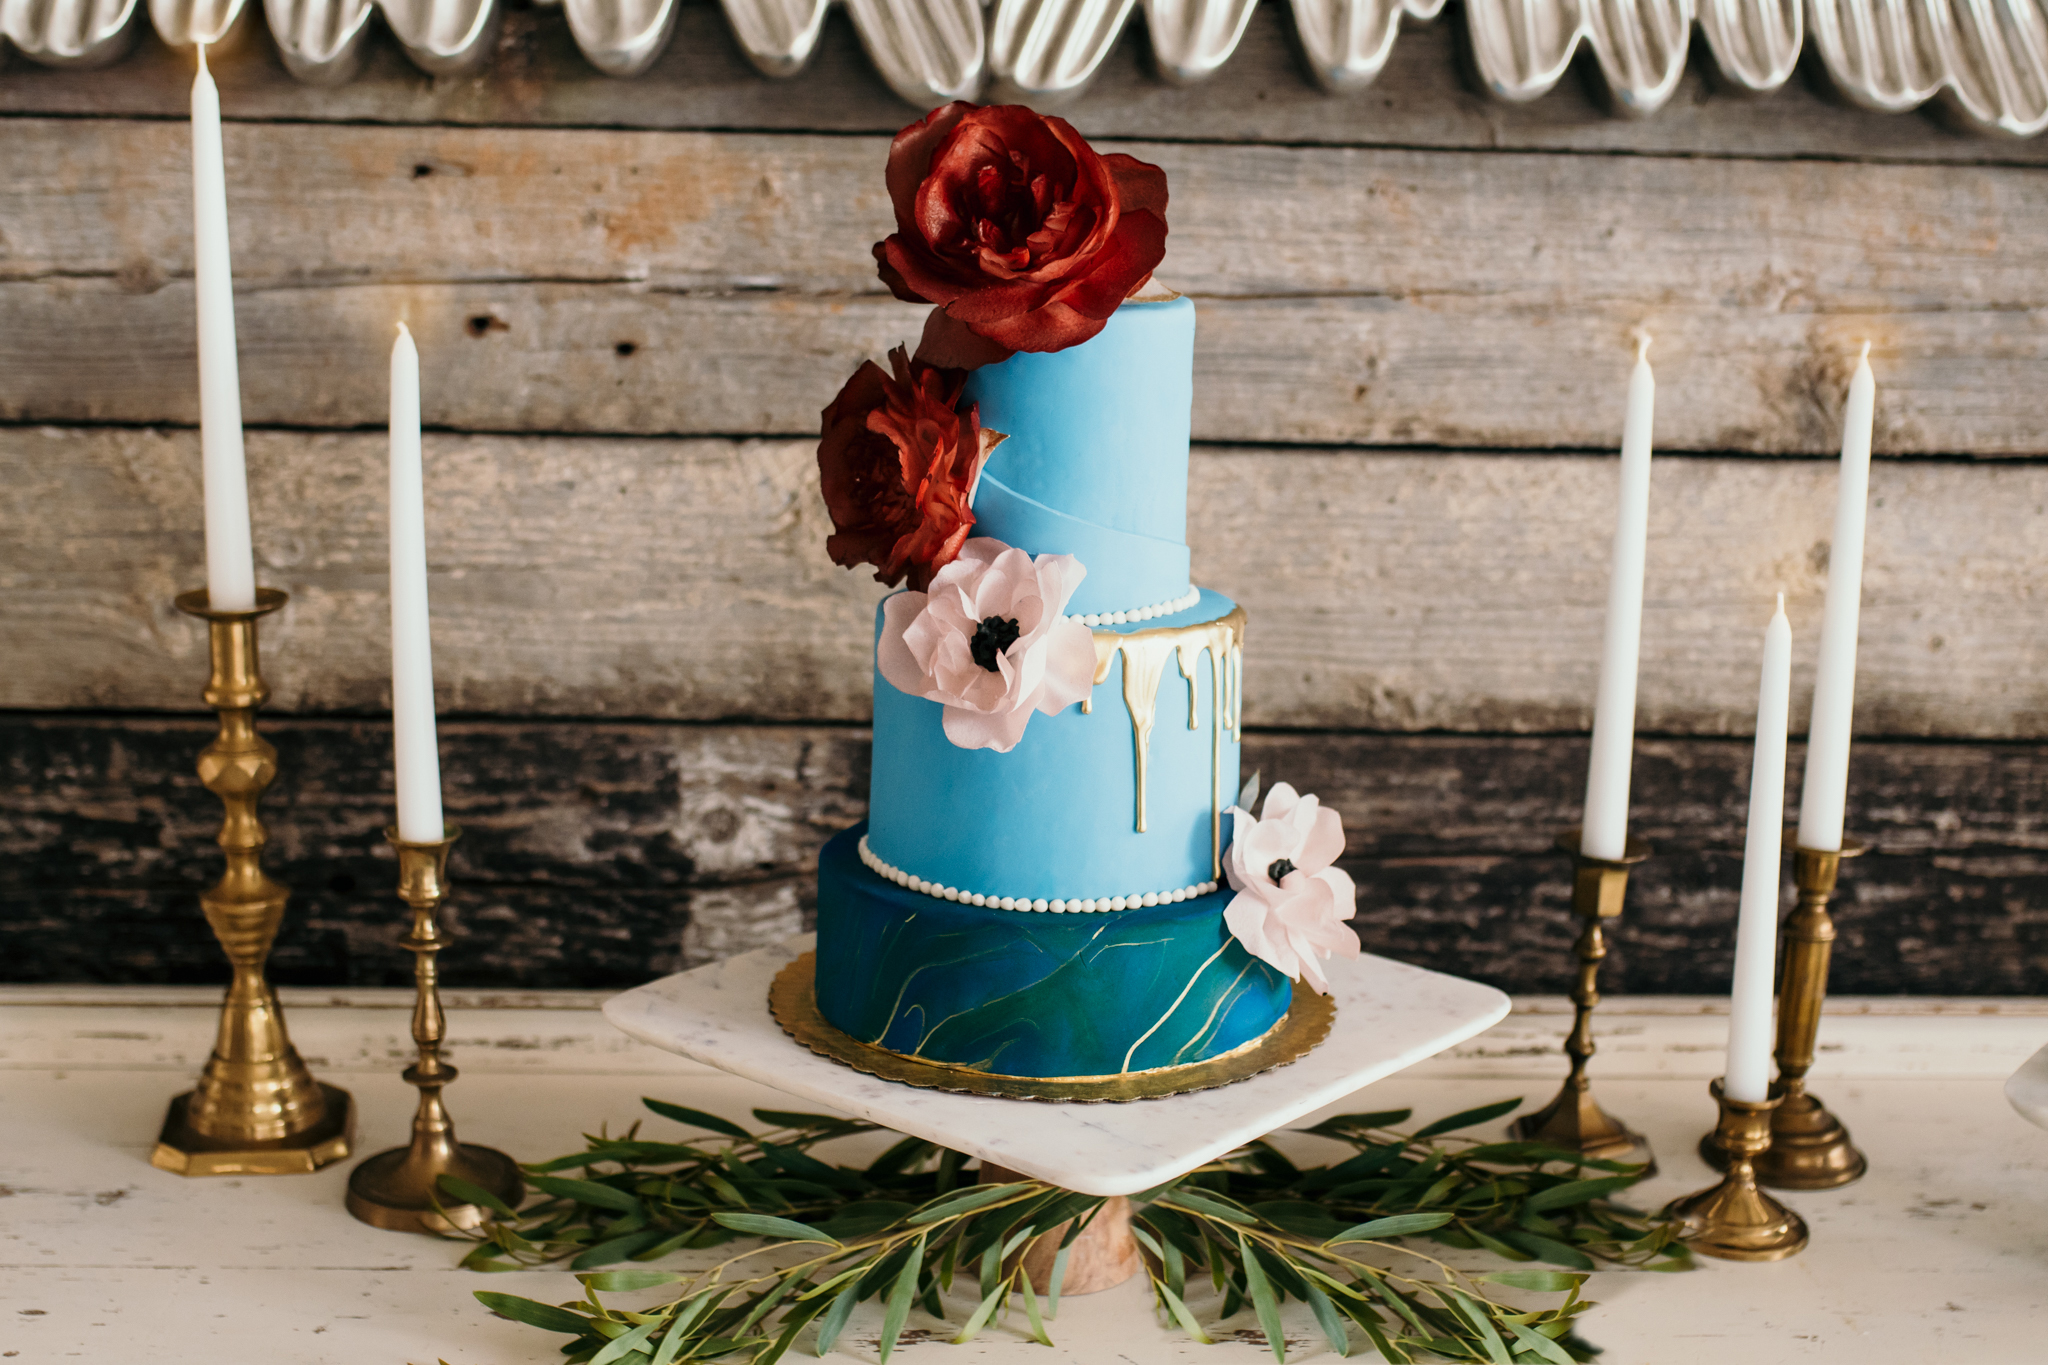 052 Jewel Tone Wedding Styled Shoot_Silver Knot_Montana Wedding Planner_Montana Wedding Photographer_Montana Wedding Videography_Honeybee Weddings-0690.jpg